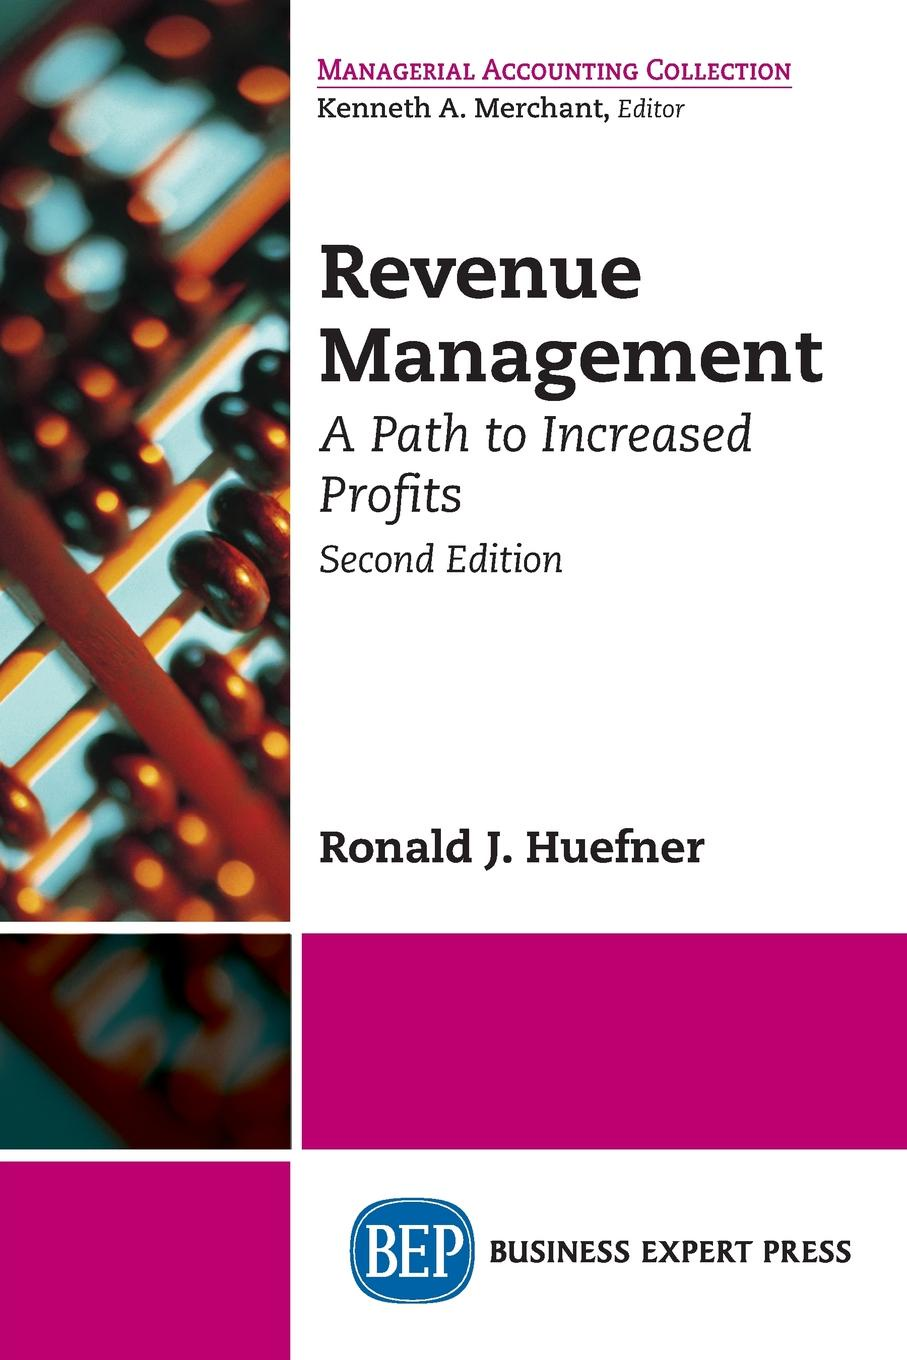 Ronald Huefner. Revenue Management. A Path to Increased Profits, Second Edition